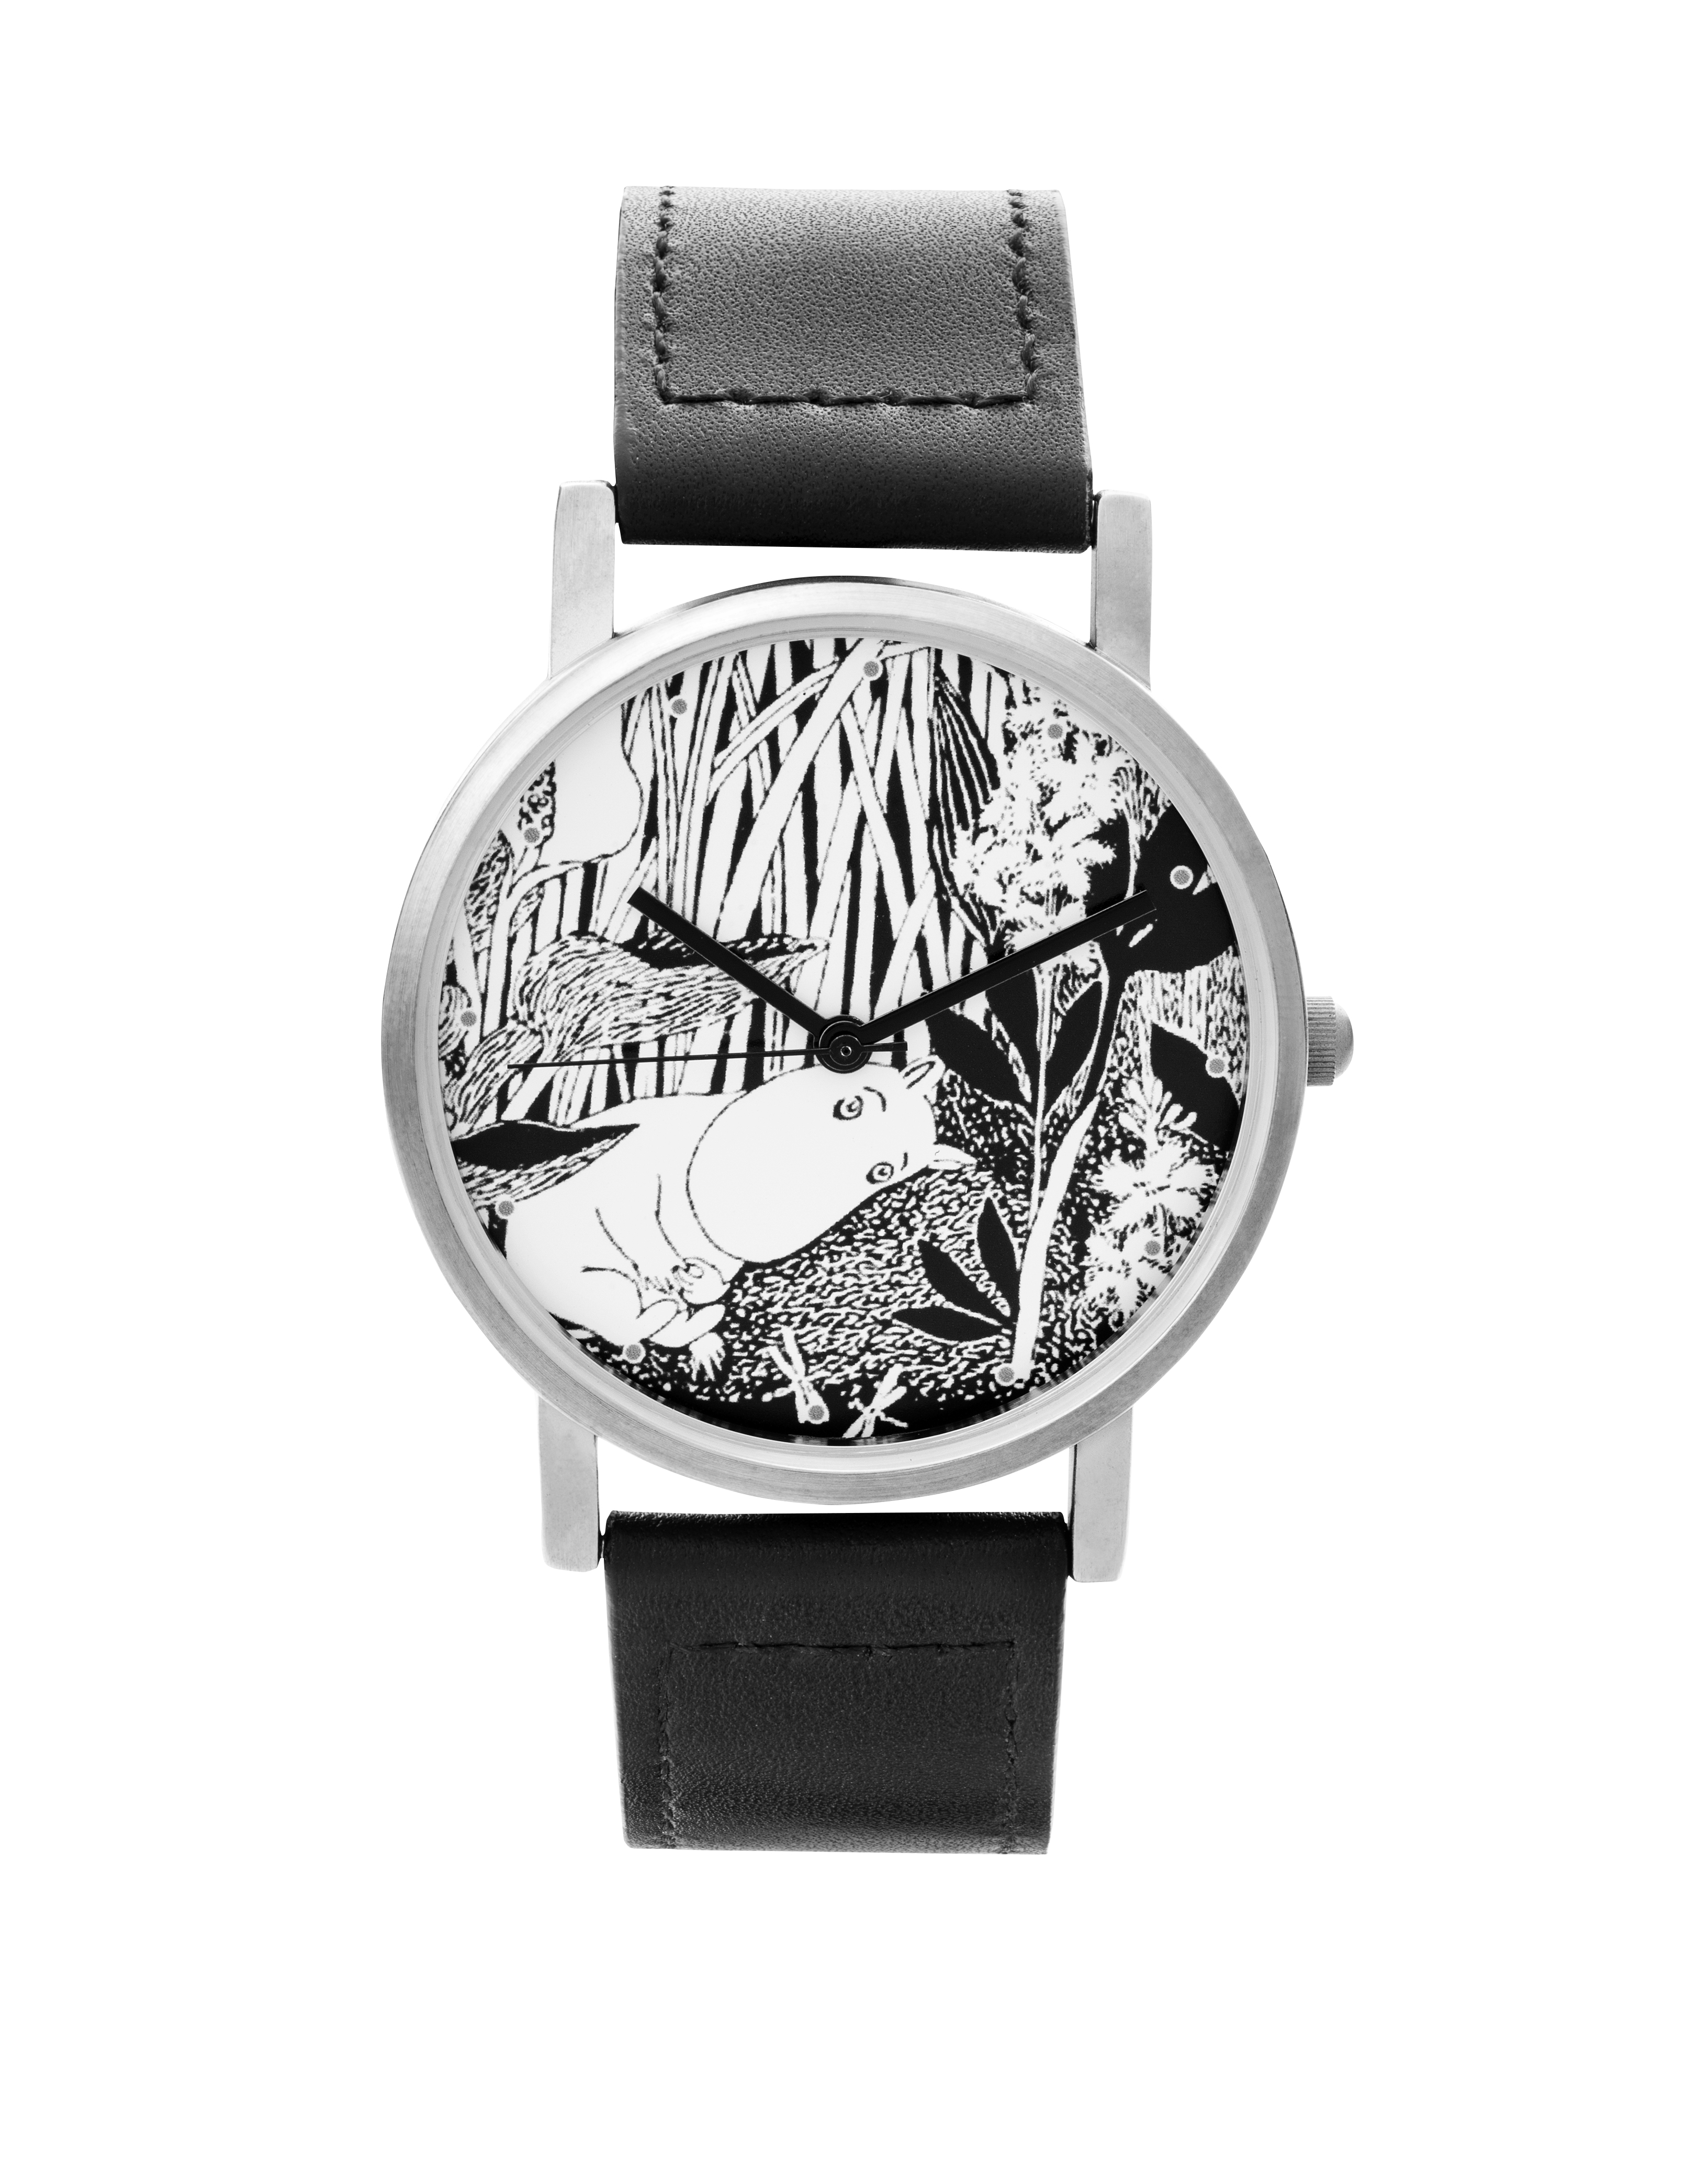 Saurum Moomintroll Dreaming watch